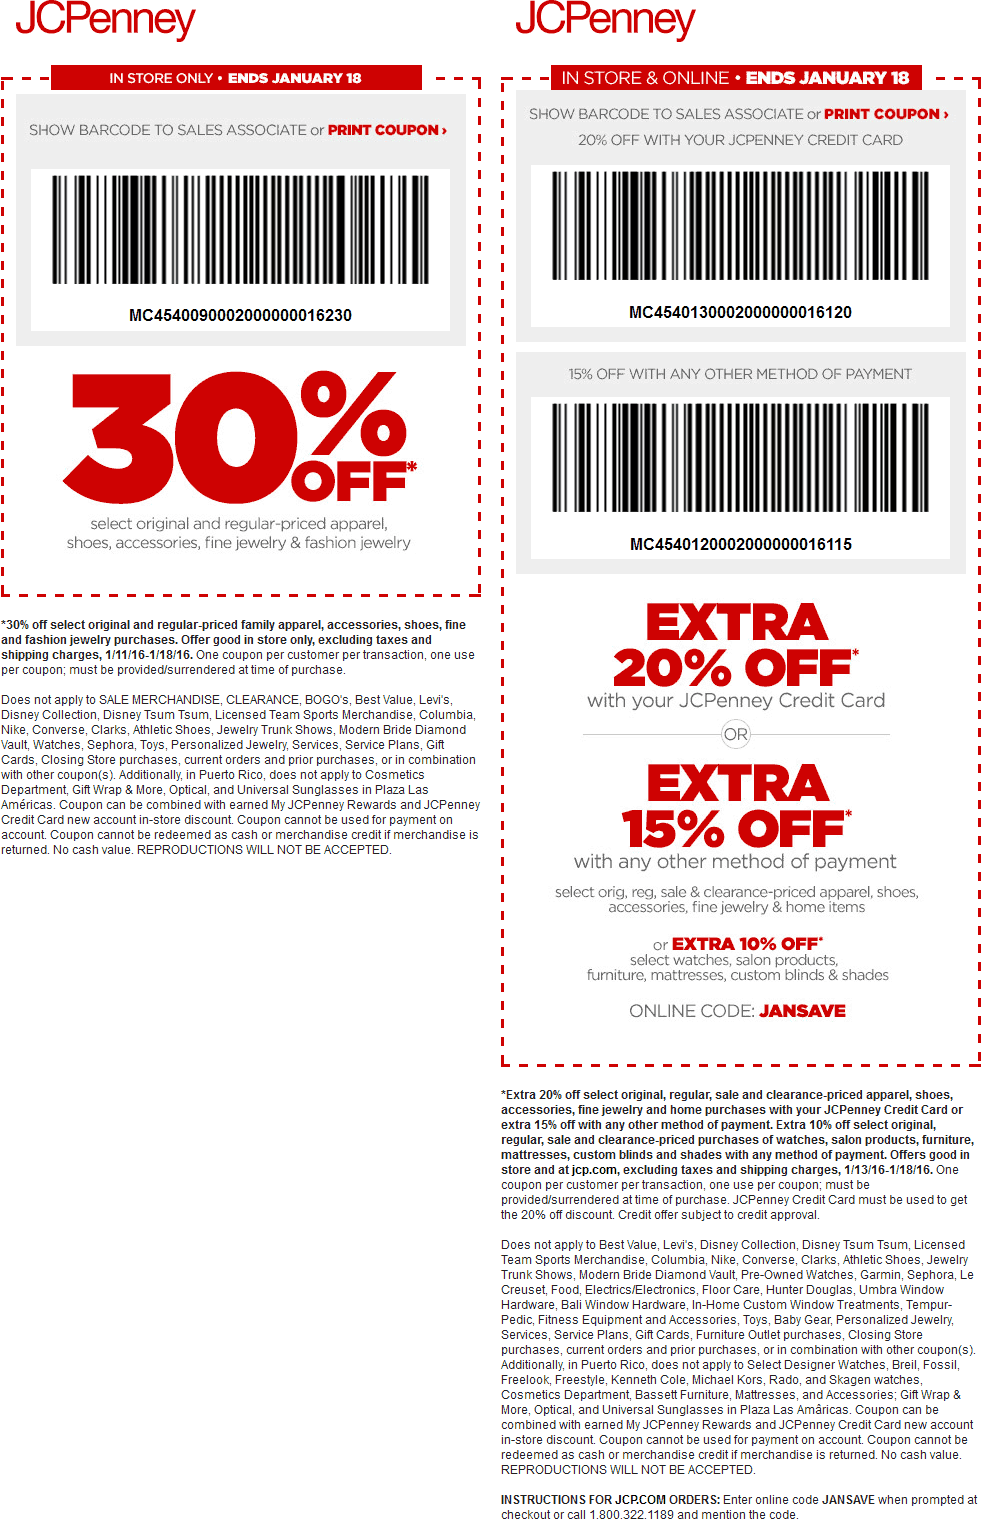 JCPenney Coupon July 2017 30% off at JCPenney